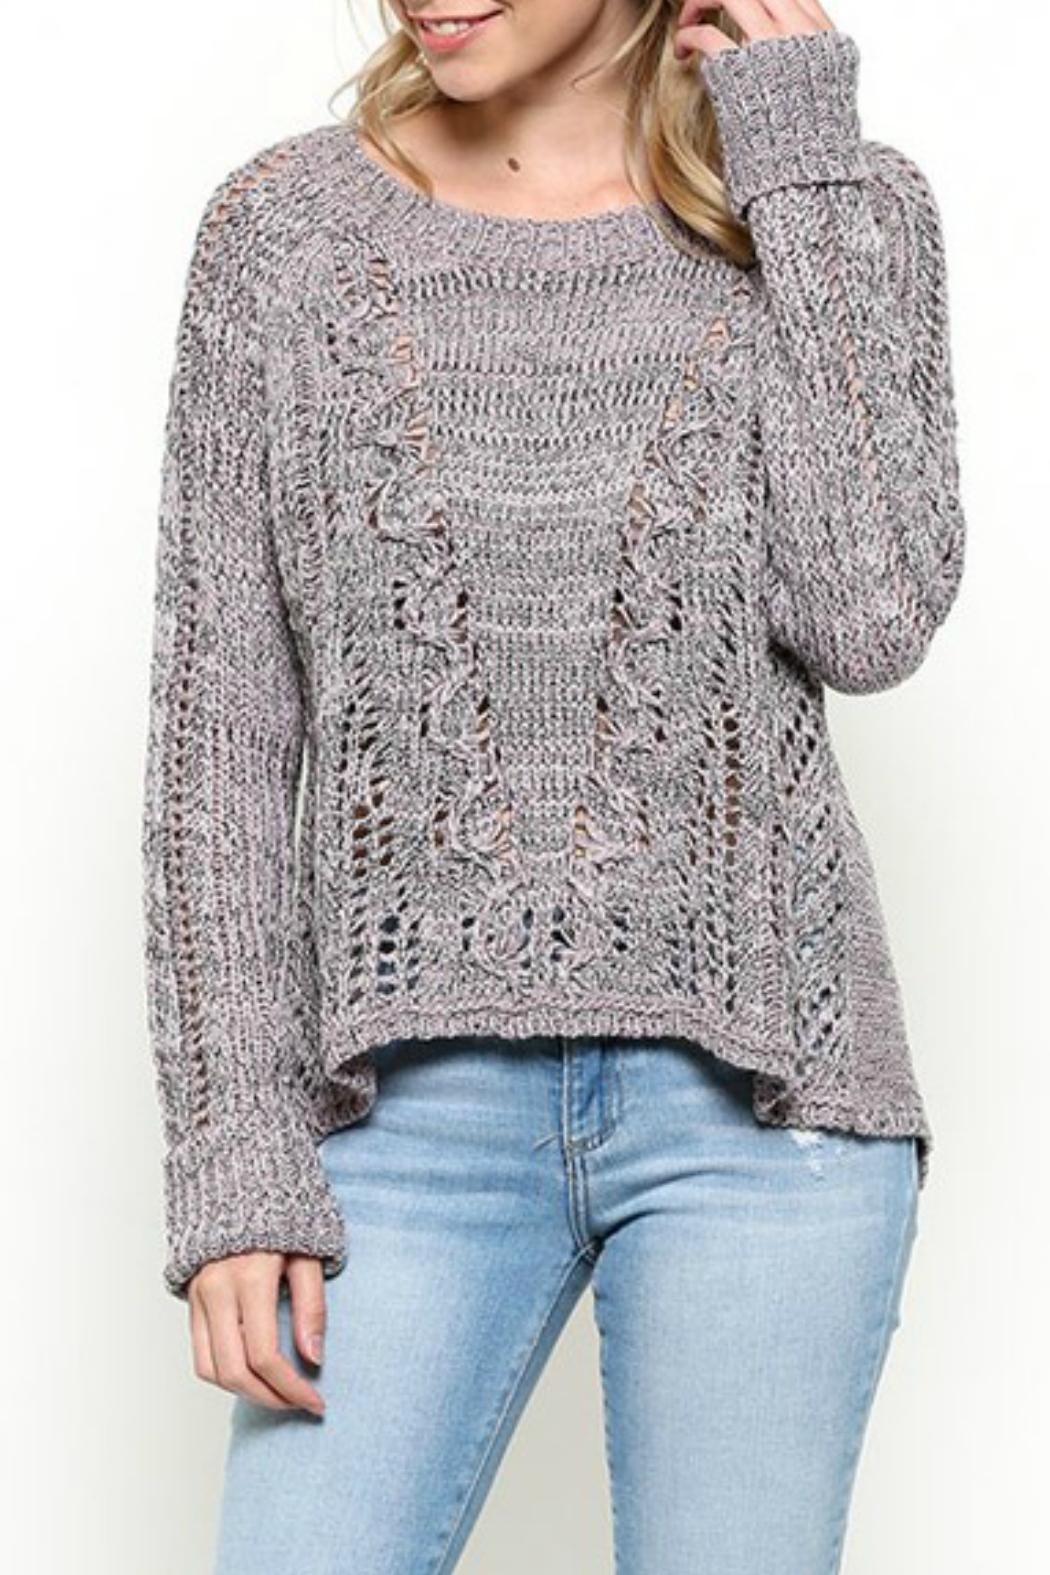 Illa Illa Lavender Open Back Sweater - Front Cropped Image